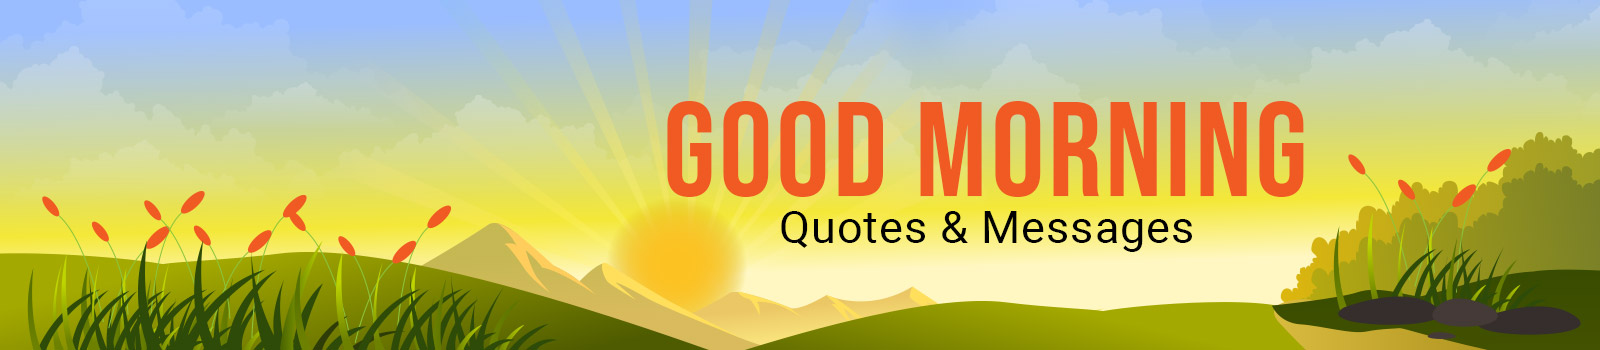 Good Morning Quotes & Messages